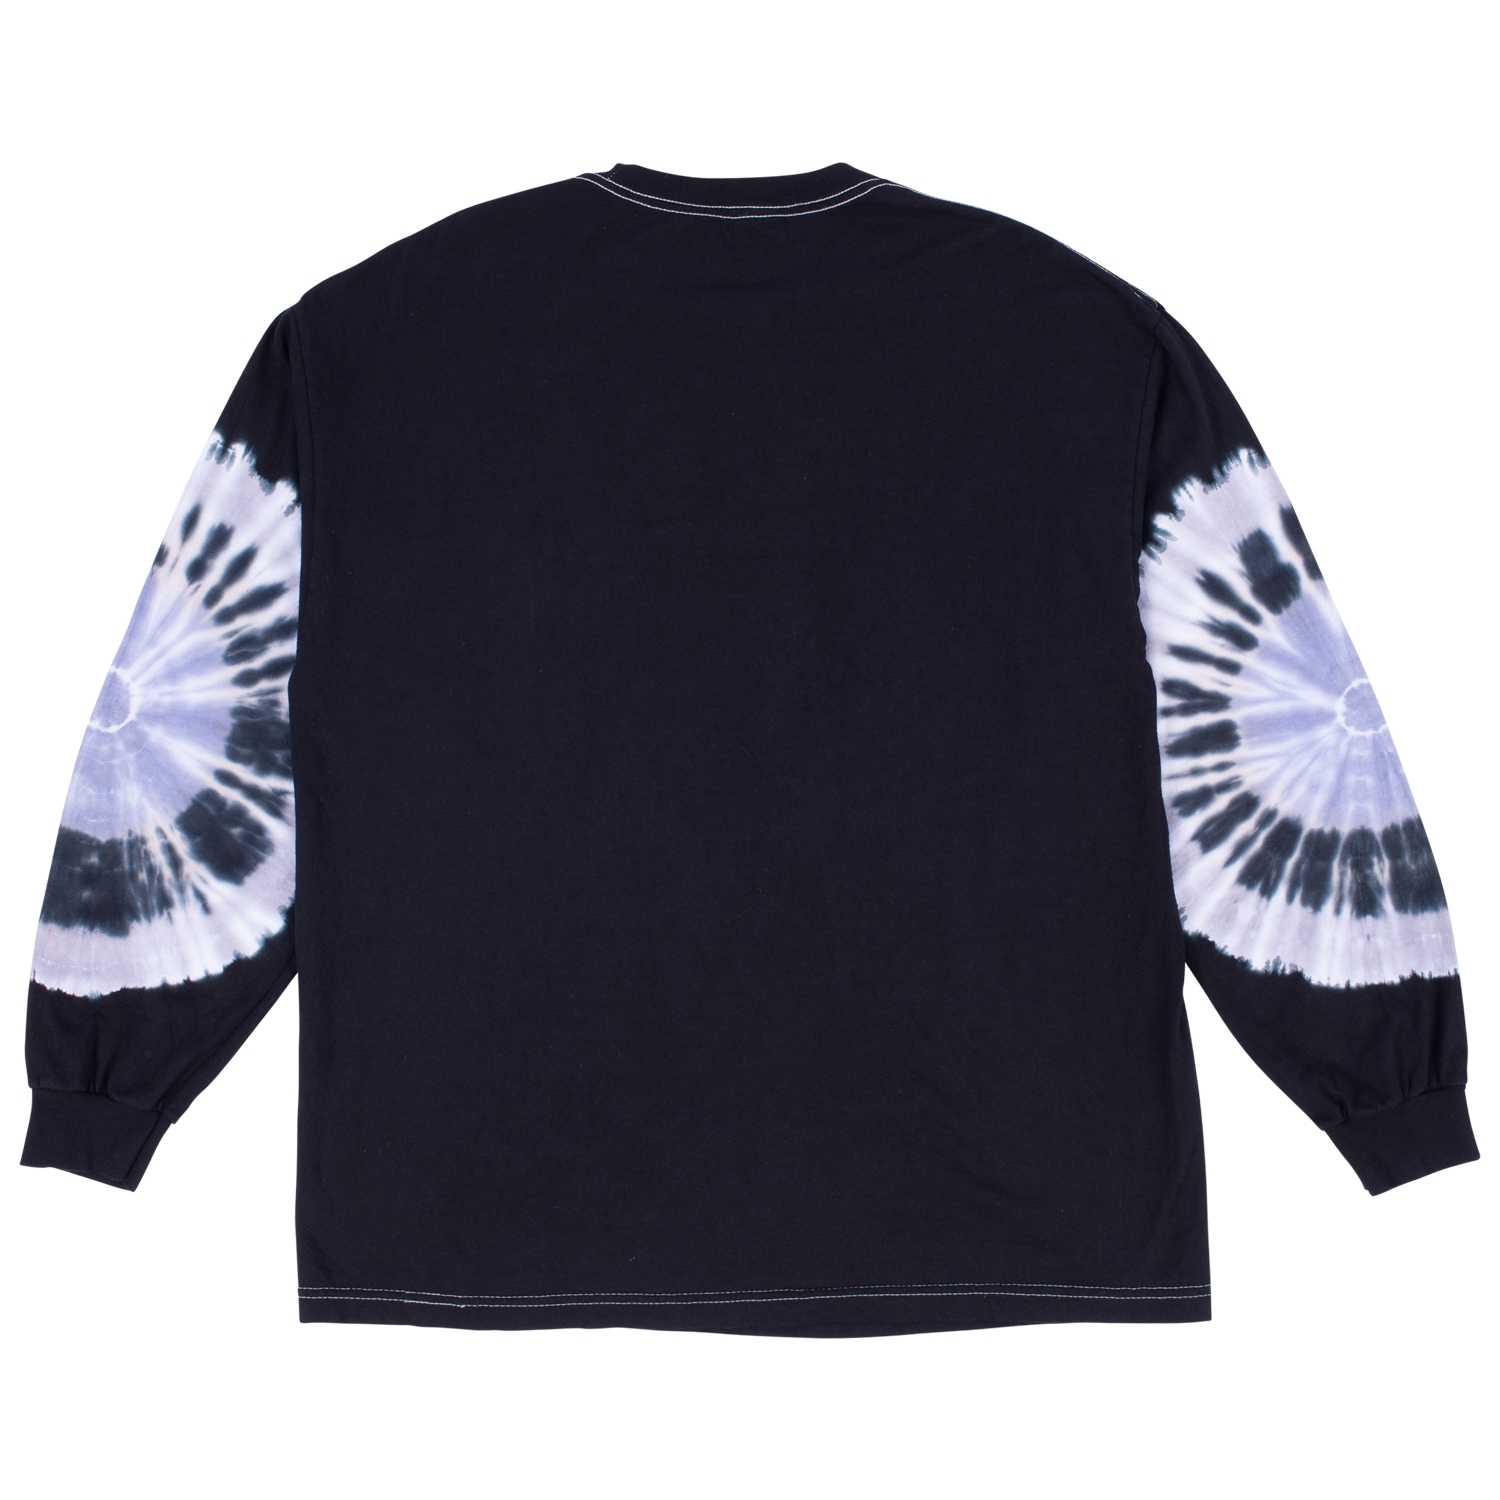 【PLEASURES/プレジャーズ】HAIRCUT TYE DYE LONG SLEEVE ロングTシャツ / BLACK